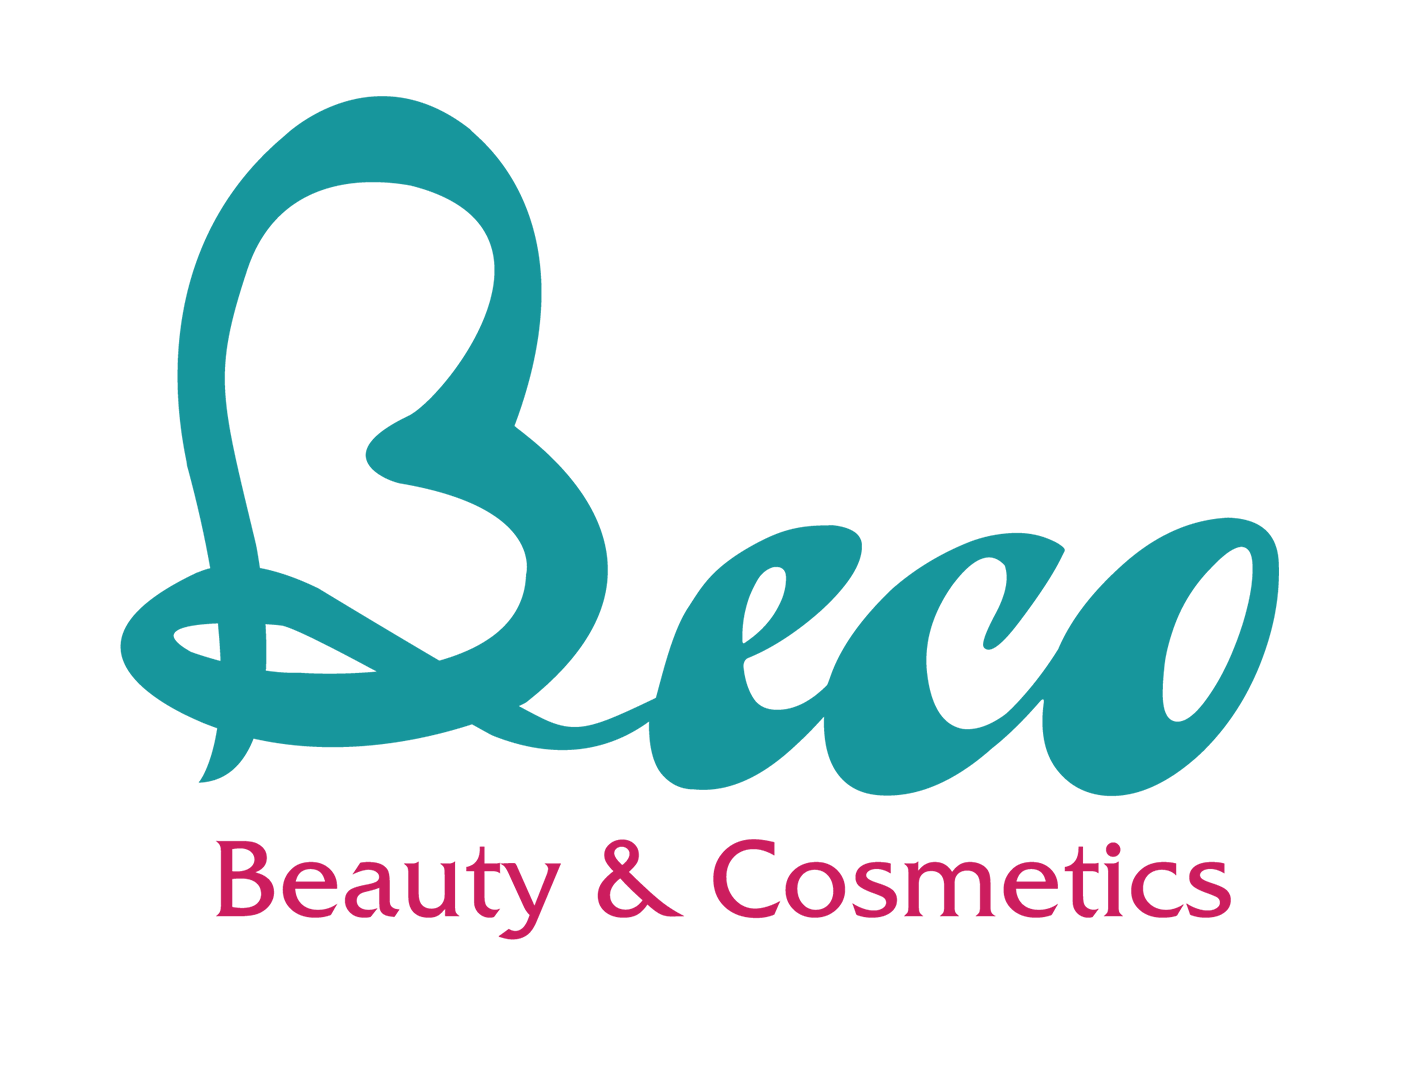 Beco.vn – Beauty & Cosmetics